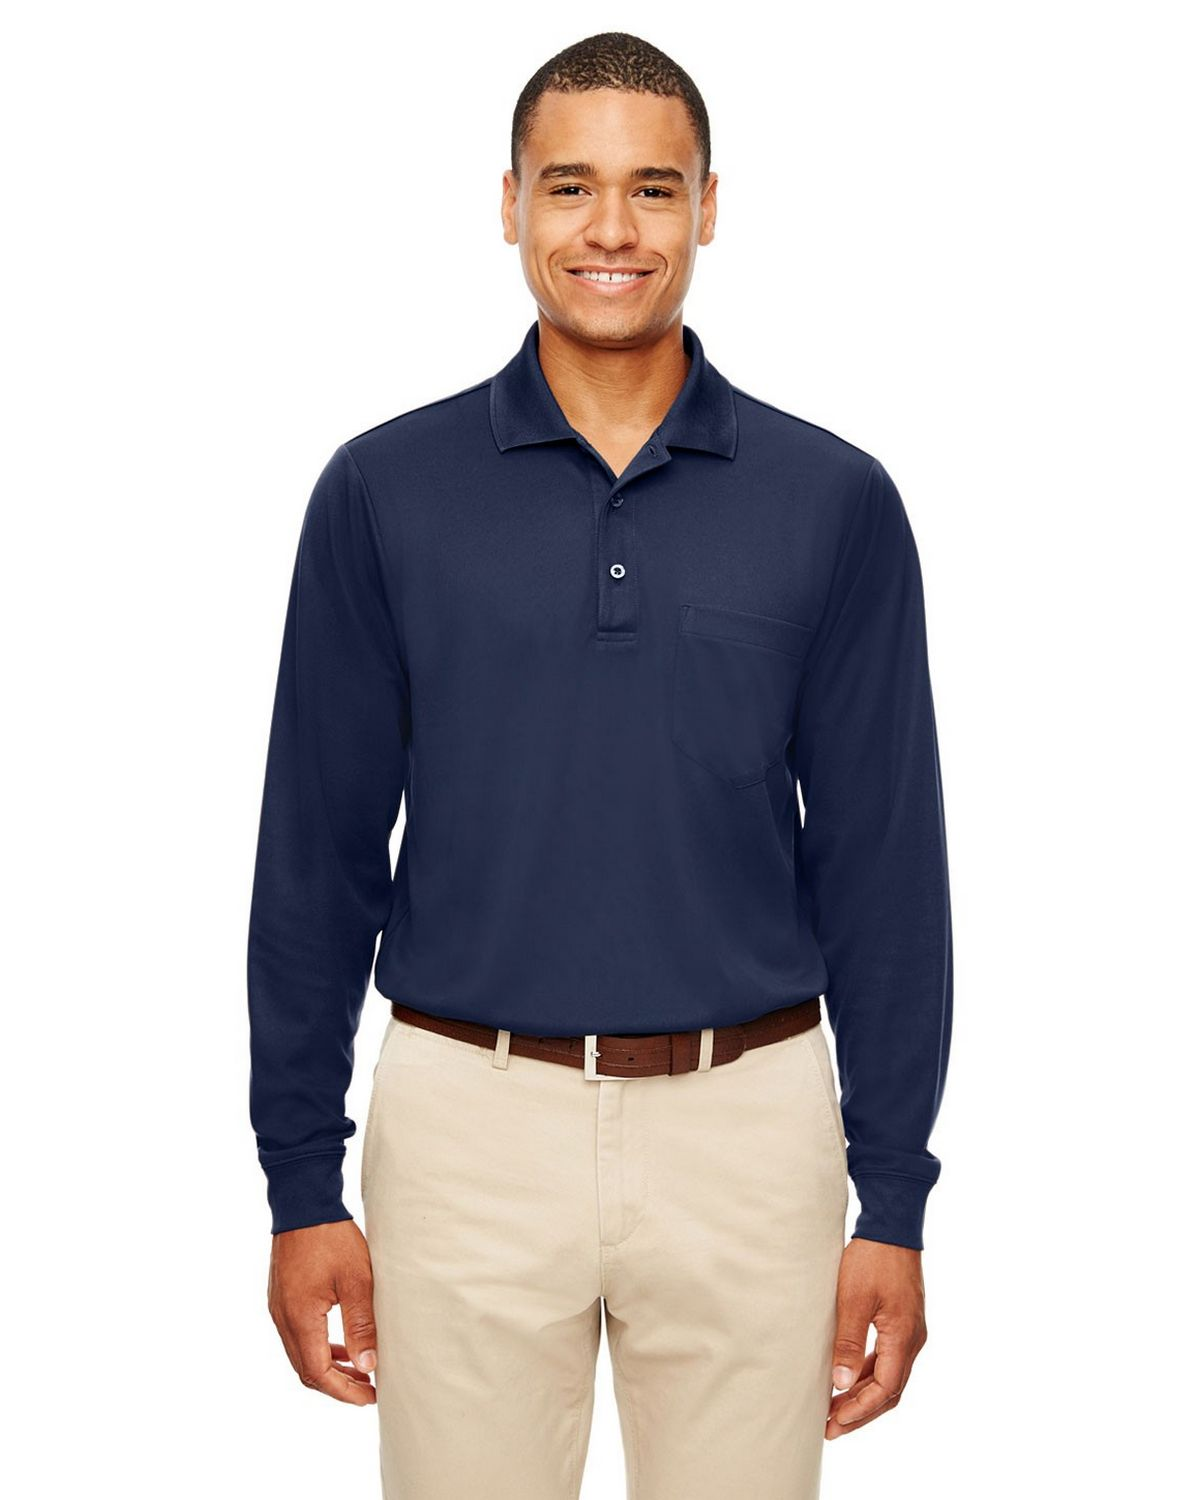 Core365 88192P Adult Pinnacle Performance Pique Long-Sleeve Polo with Pocket